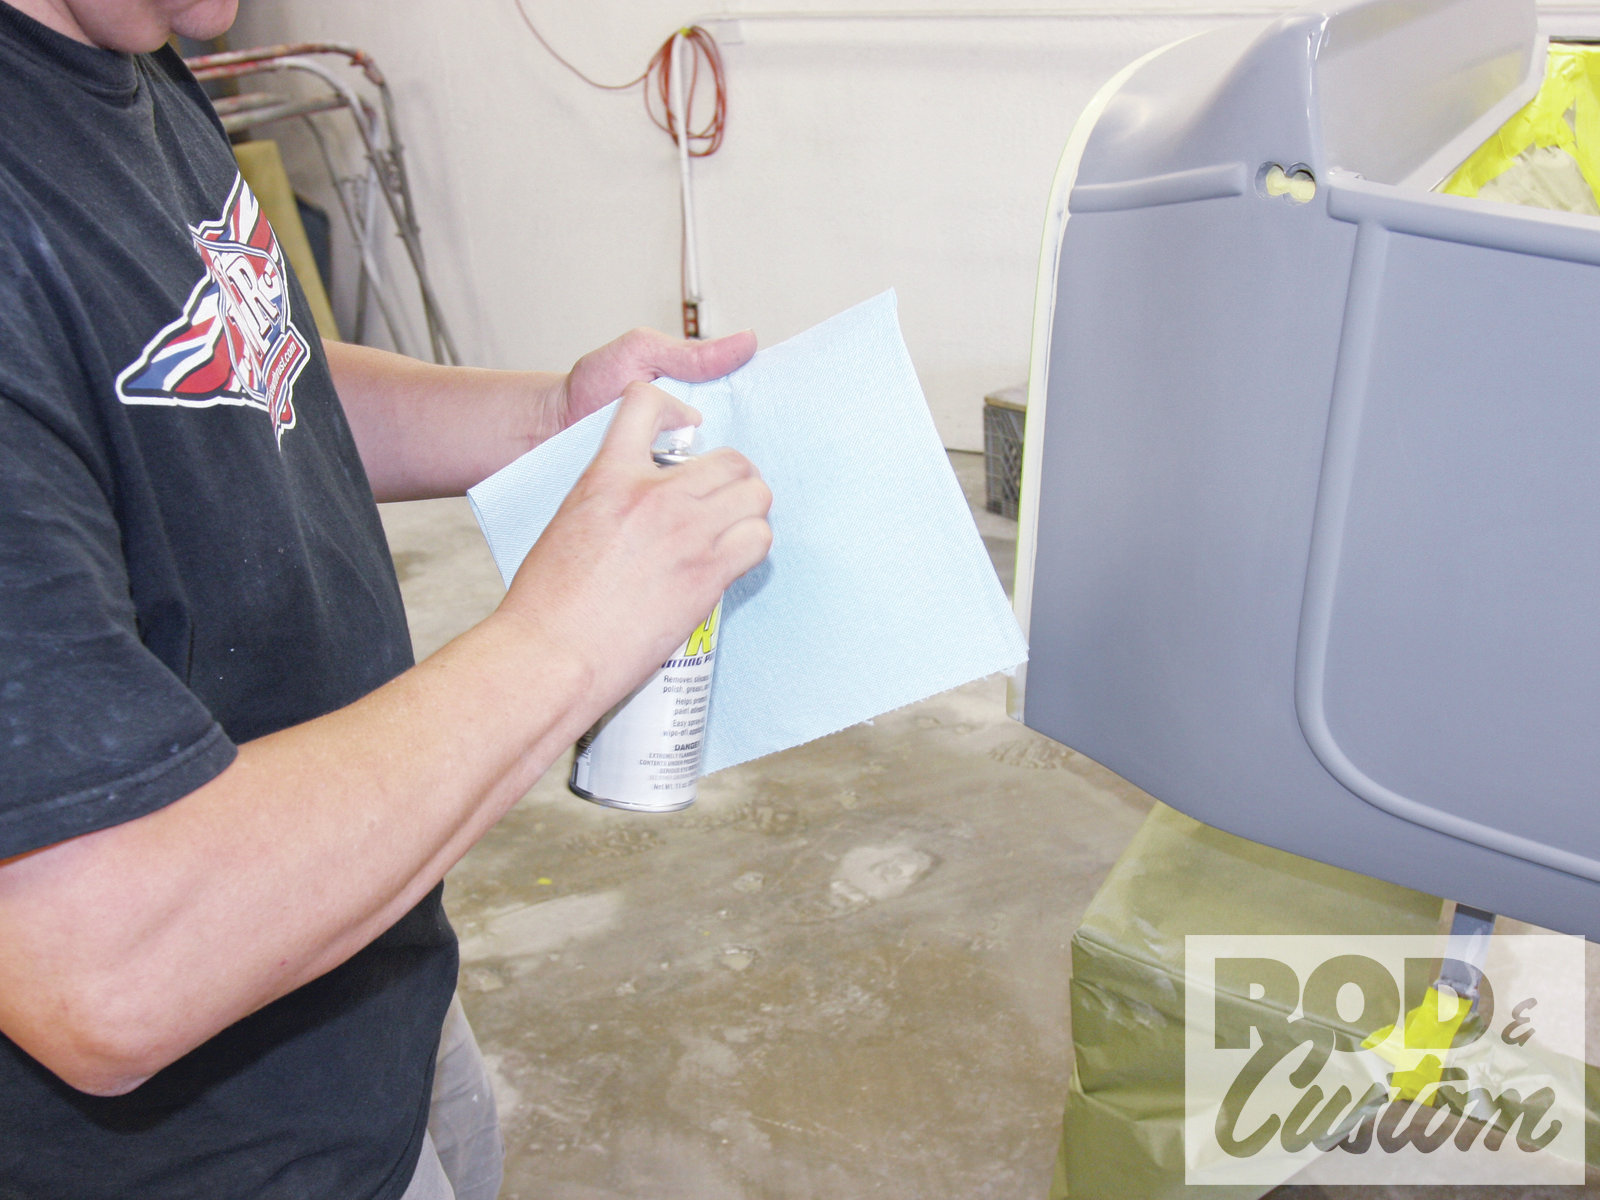 15. The body was prepped using Eastwood's Pre Painting Prep aerosol, to ensure a clean surface.